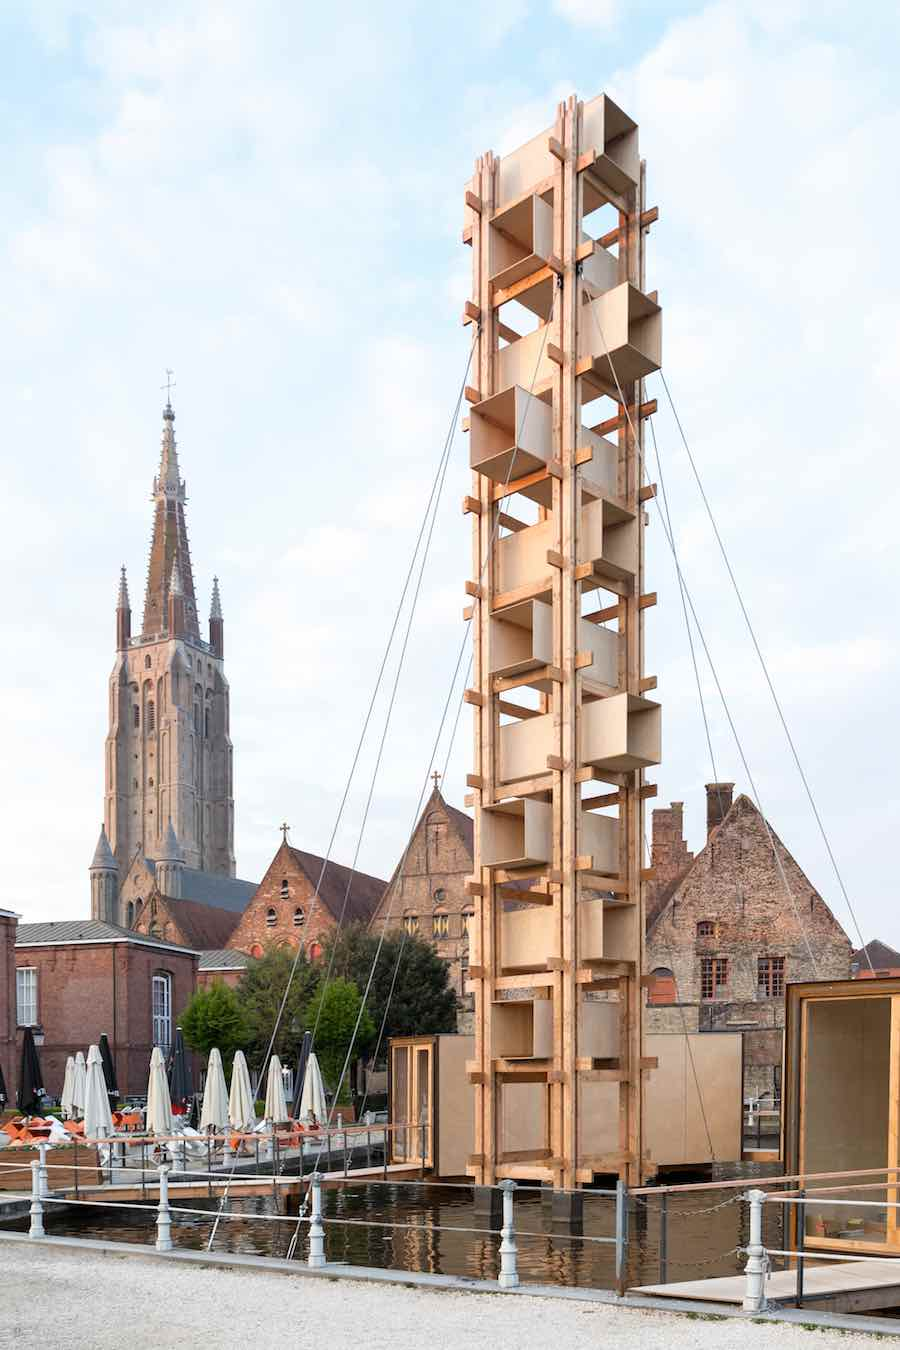 Triennial Bruges 2018 - Atelier4' installation - Photo by Iwan Baan, courtesy of Triennial Bruges.